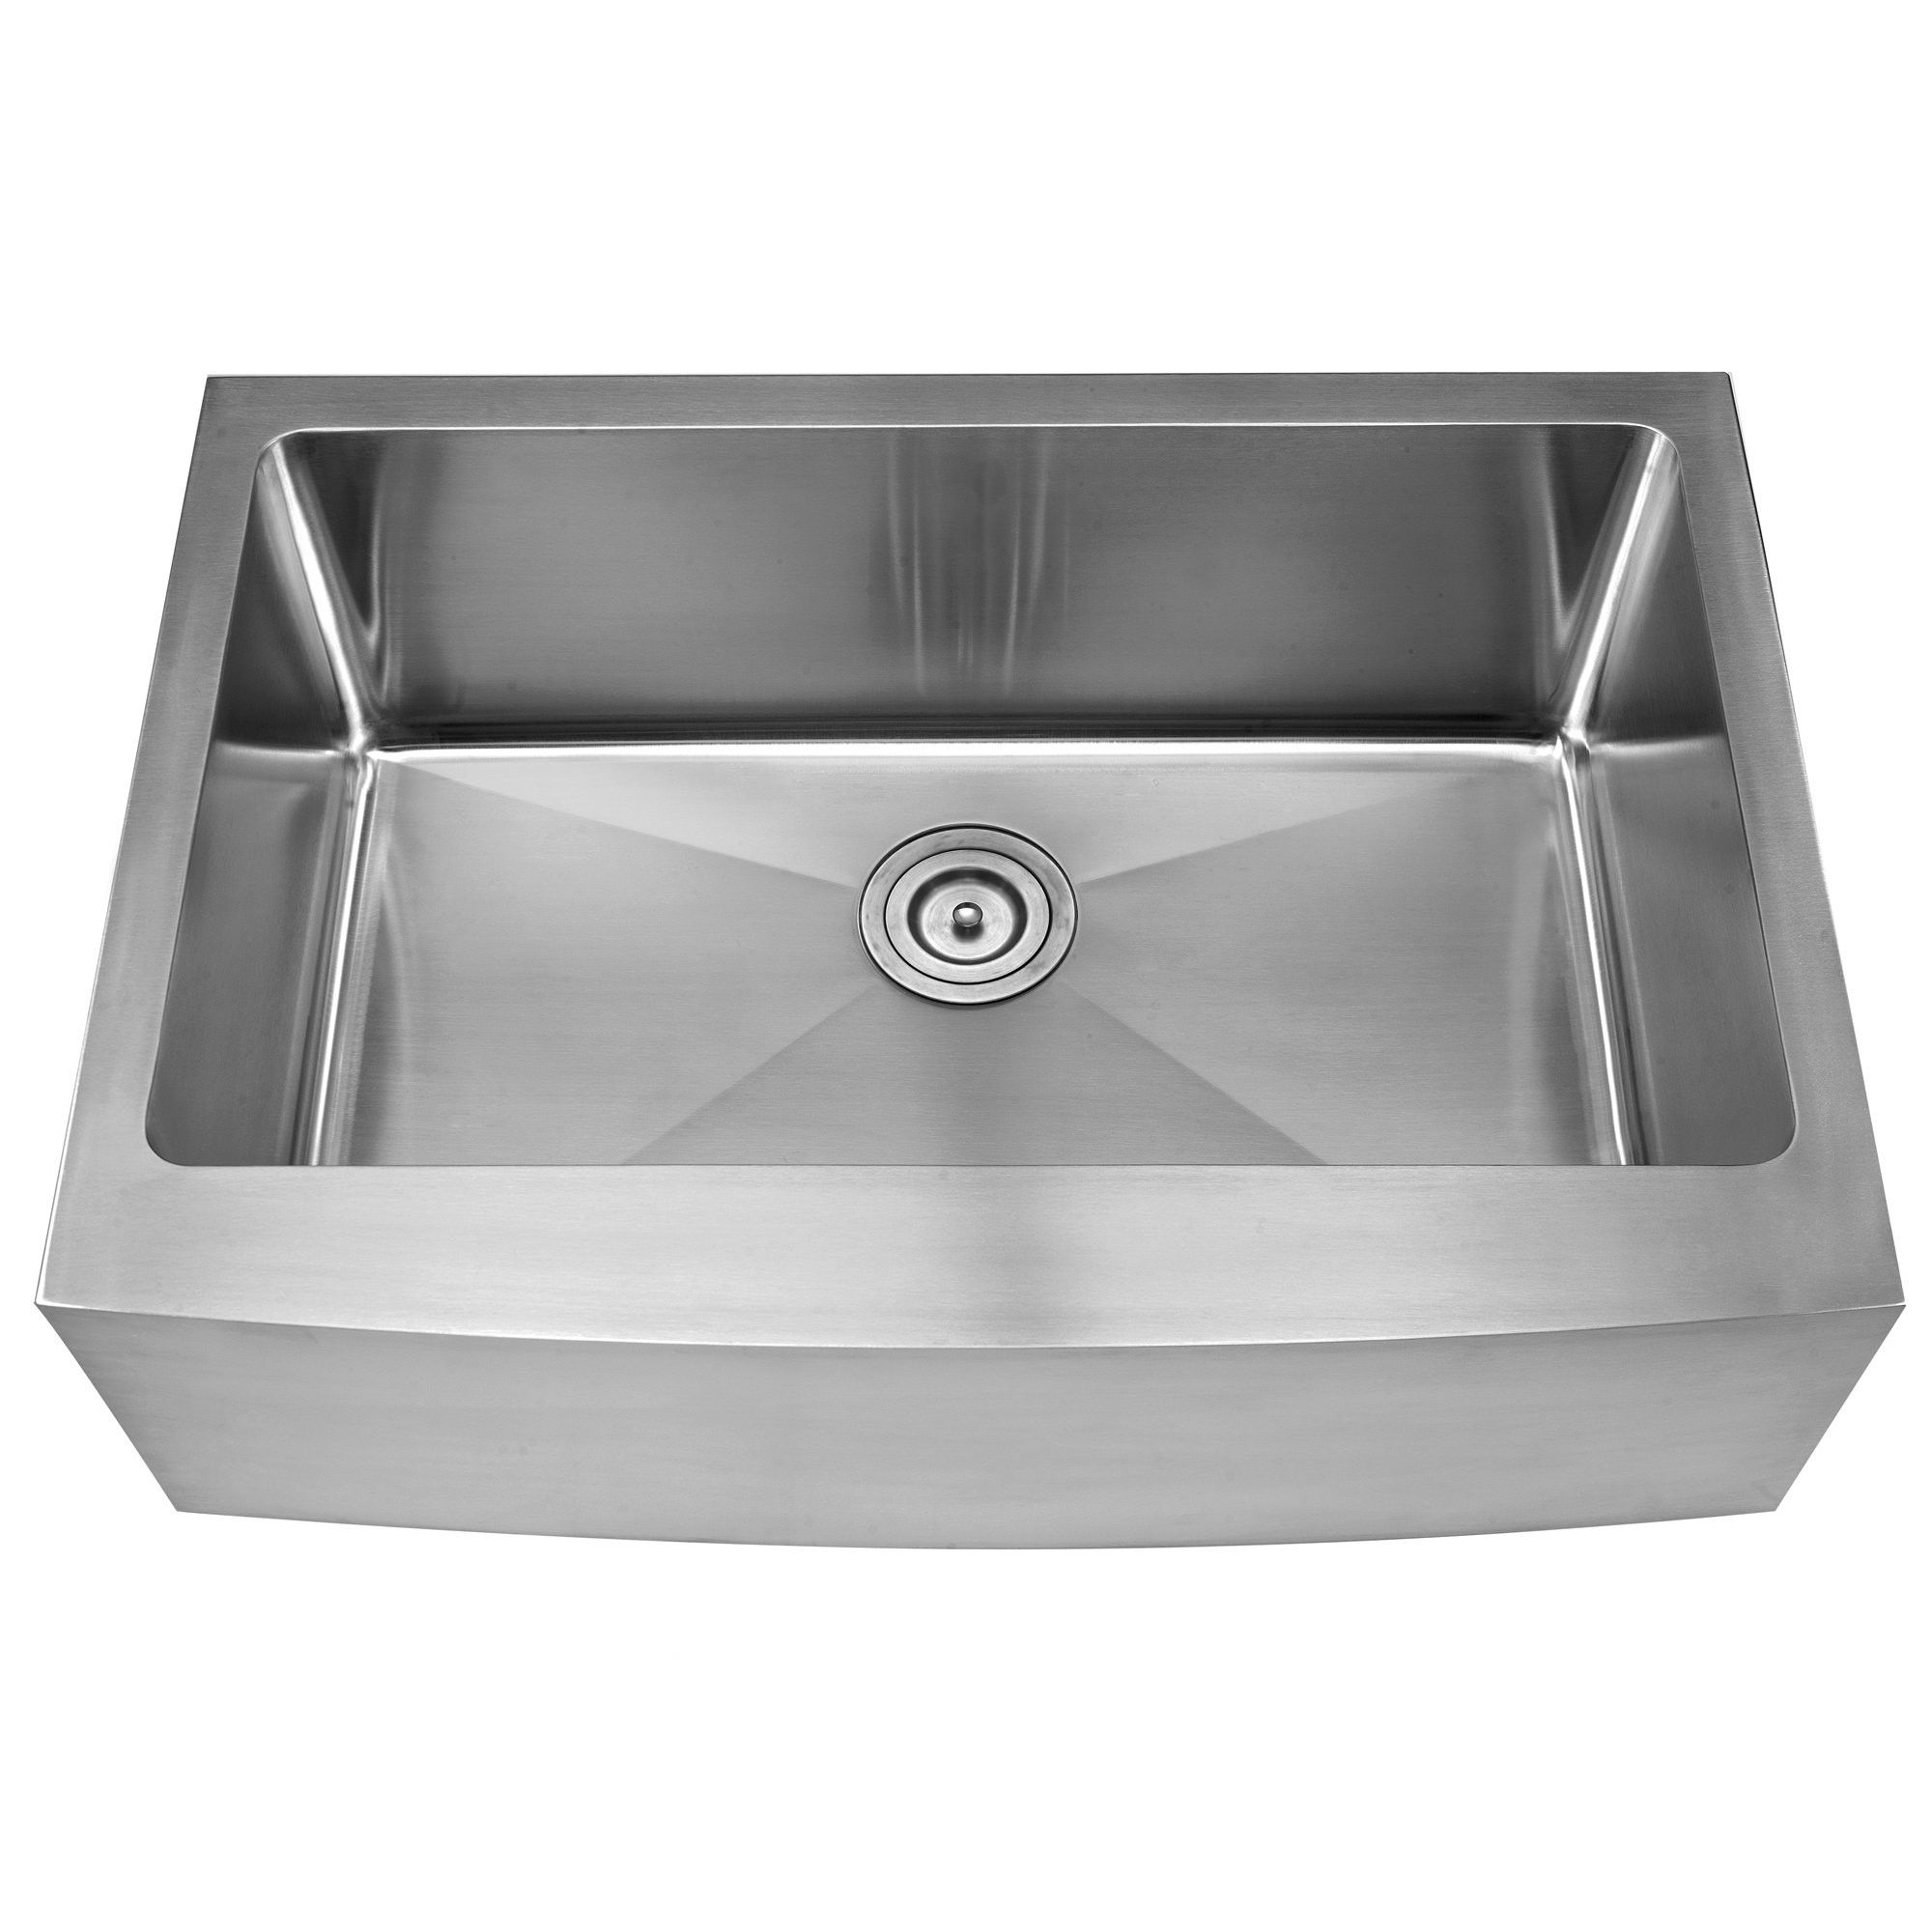 30 L X 21 W Farmhouse Kitchen Sink With Basket Strainer Sink